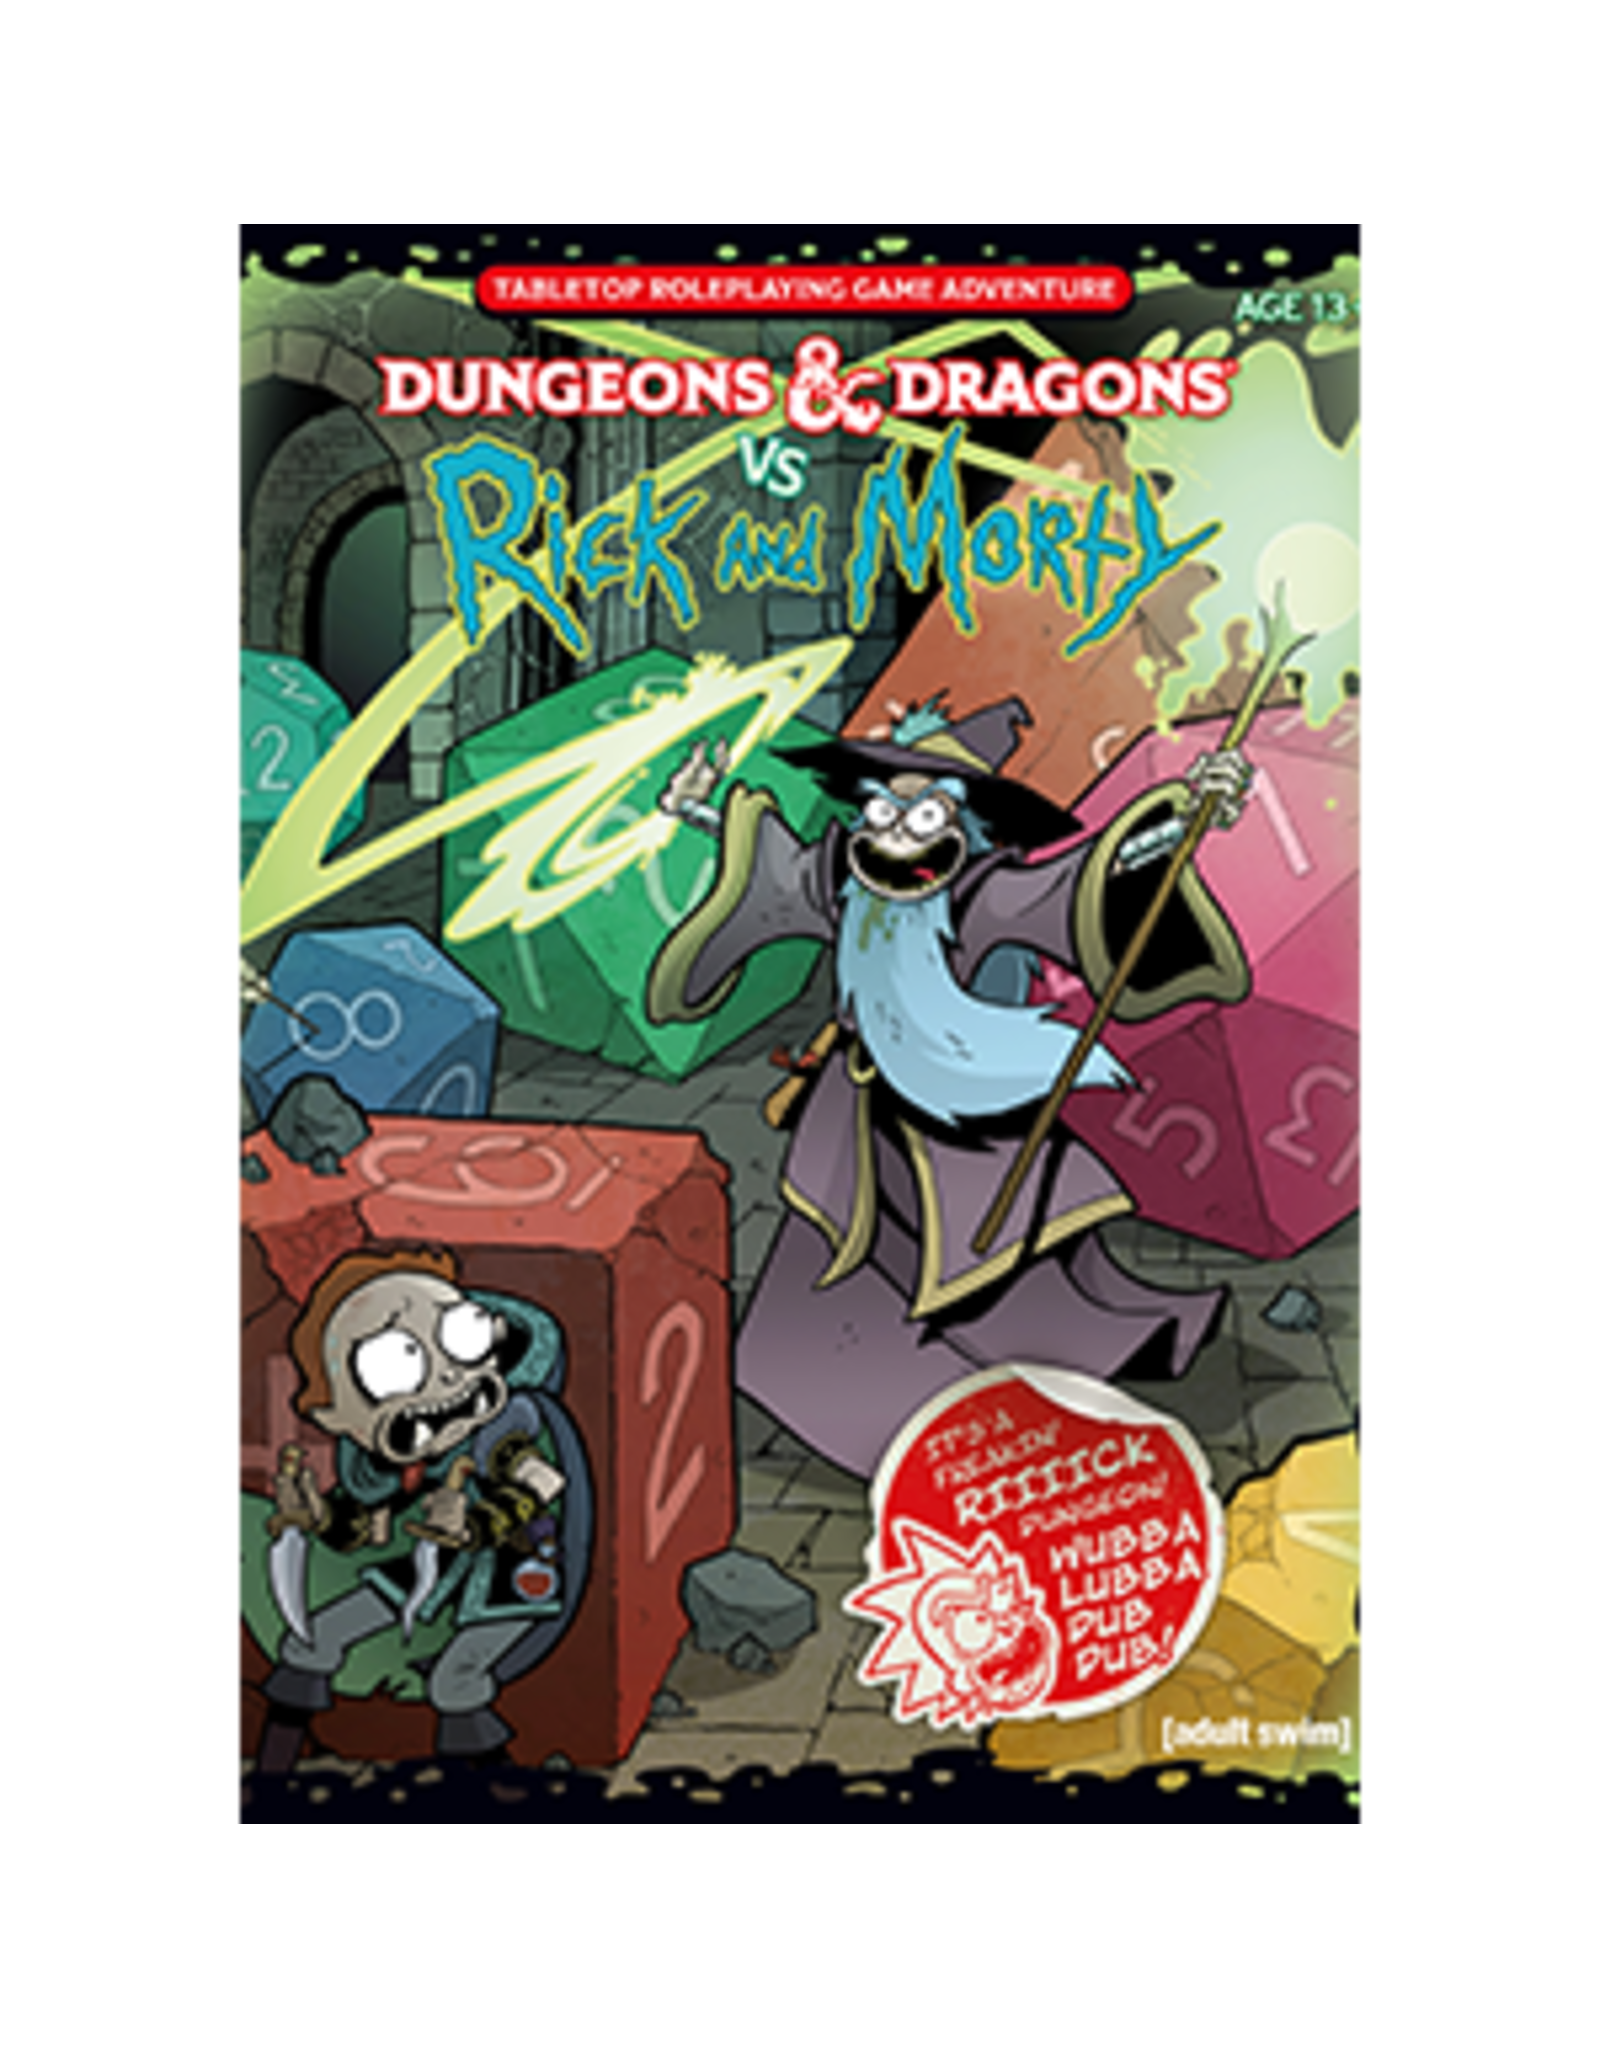 Wizards of the Coast Dungeons and Dragons RPG: Dungeons & Dragons vs. Rick and Morty - Tabletop RPG